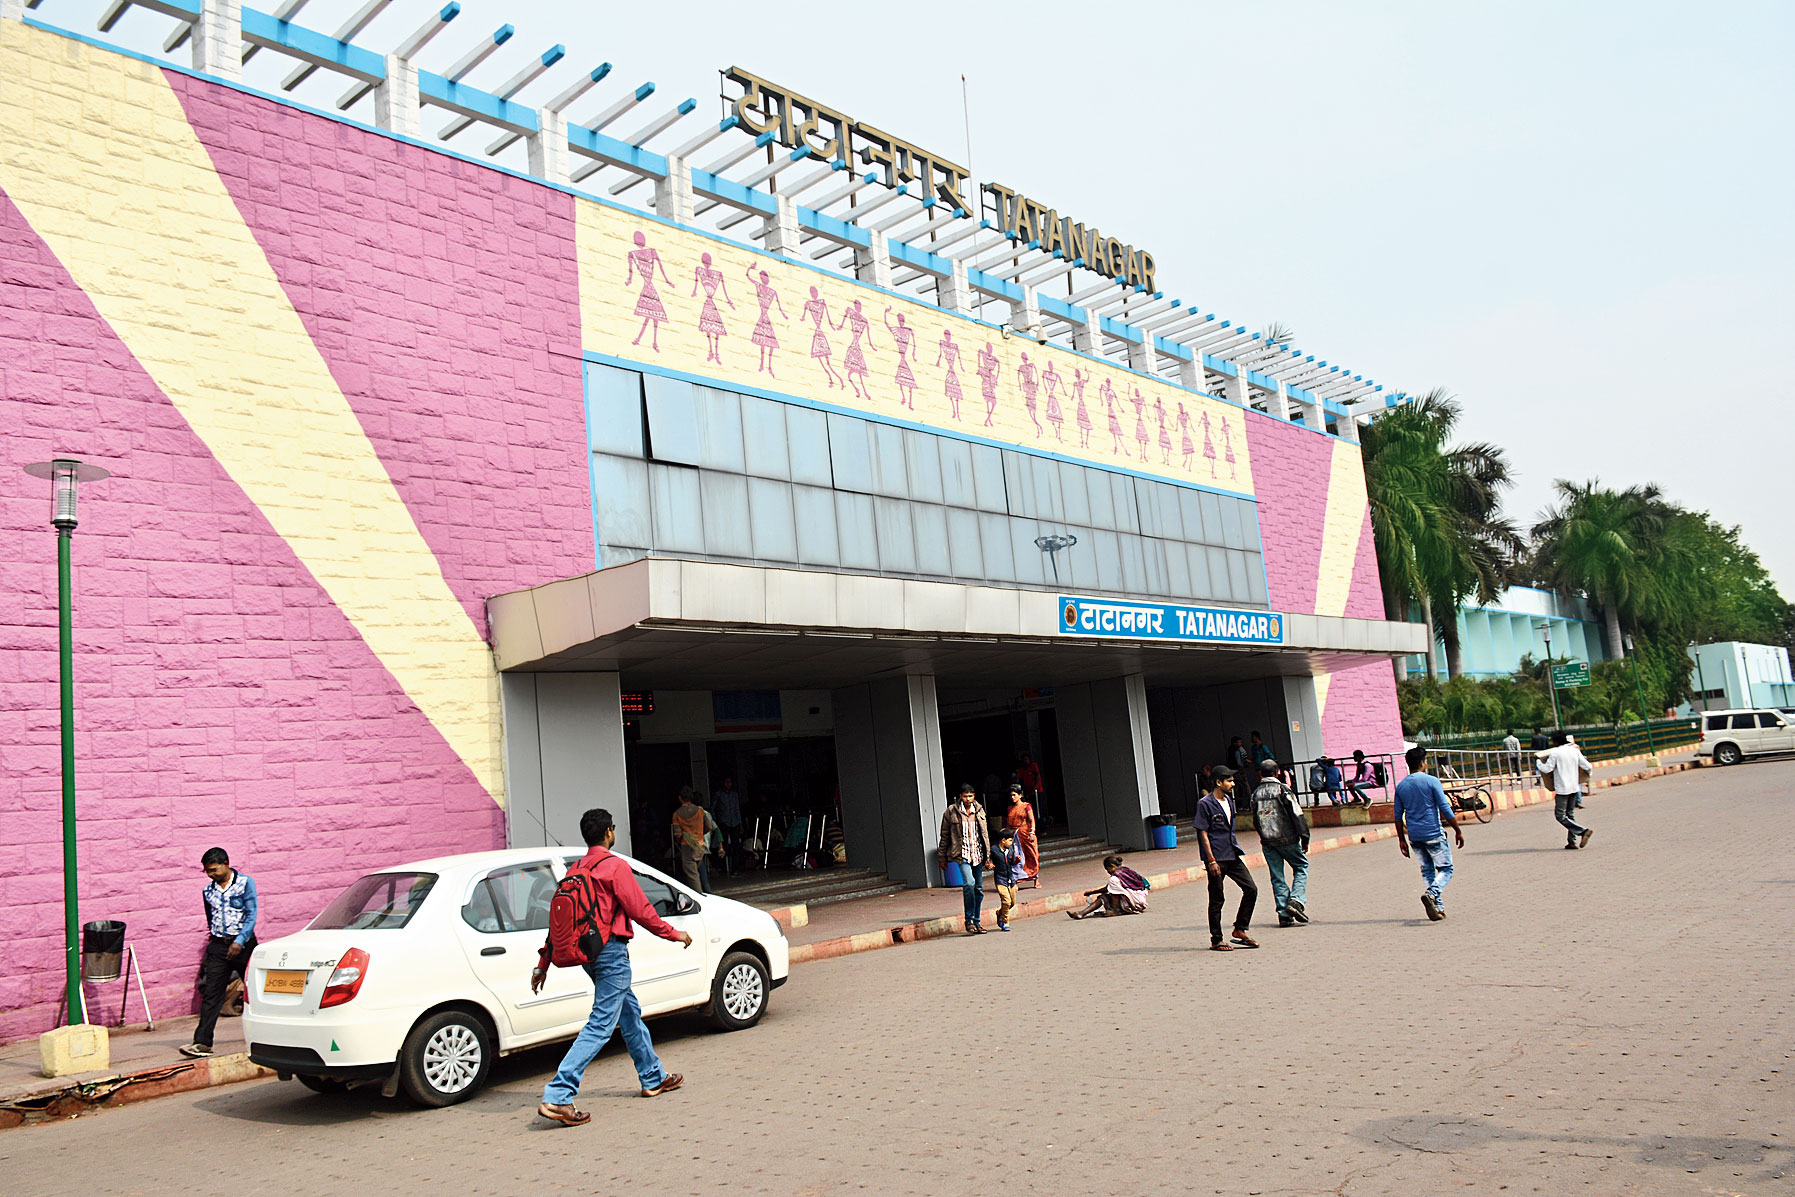 Tatanagar station